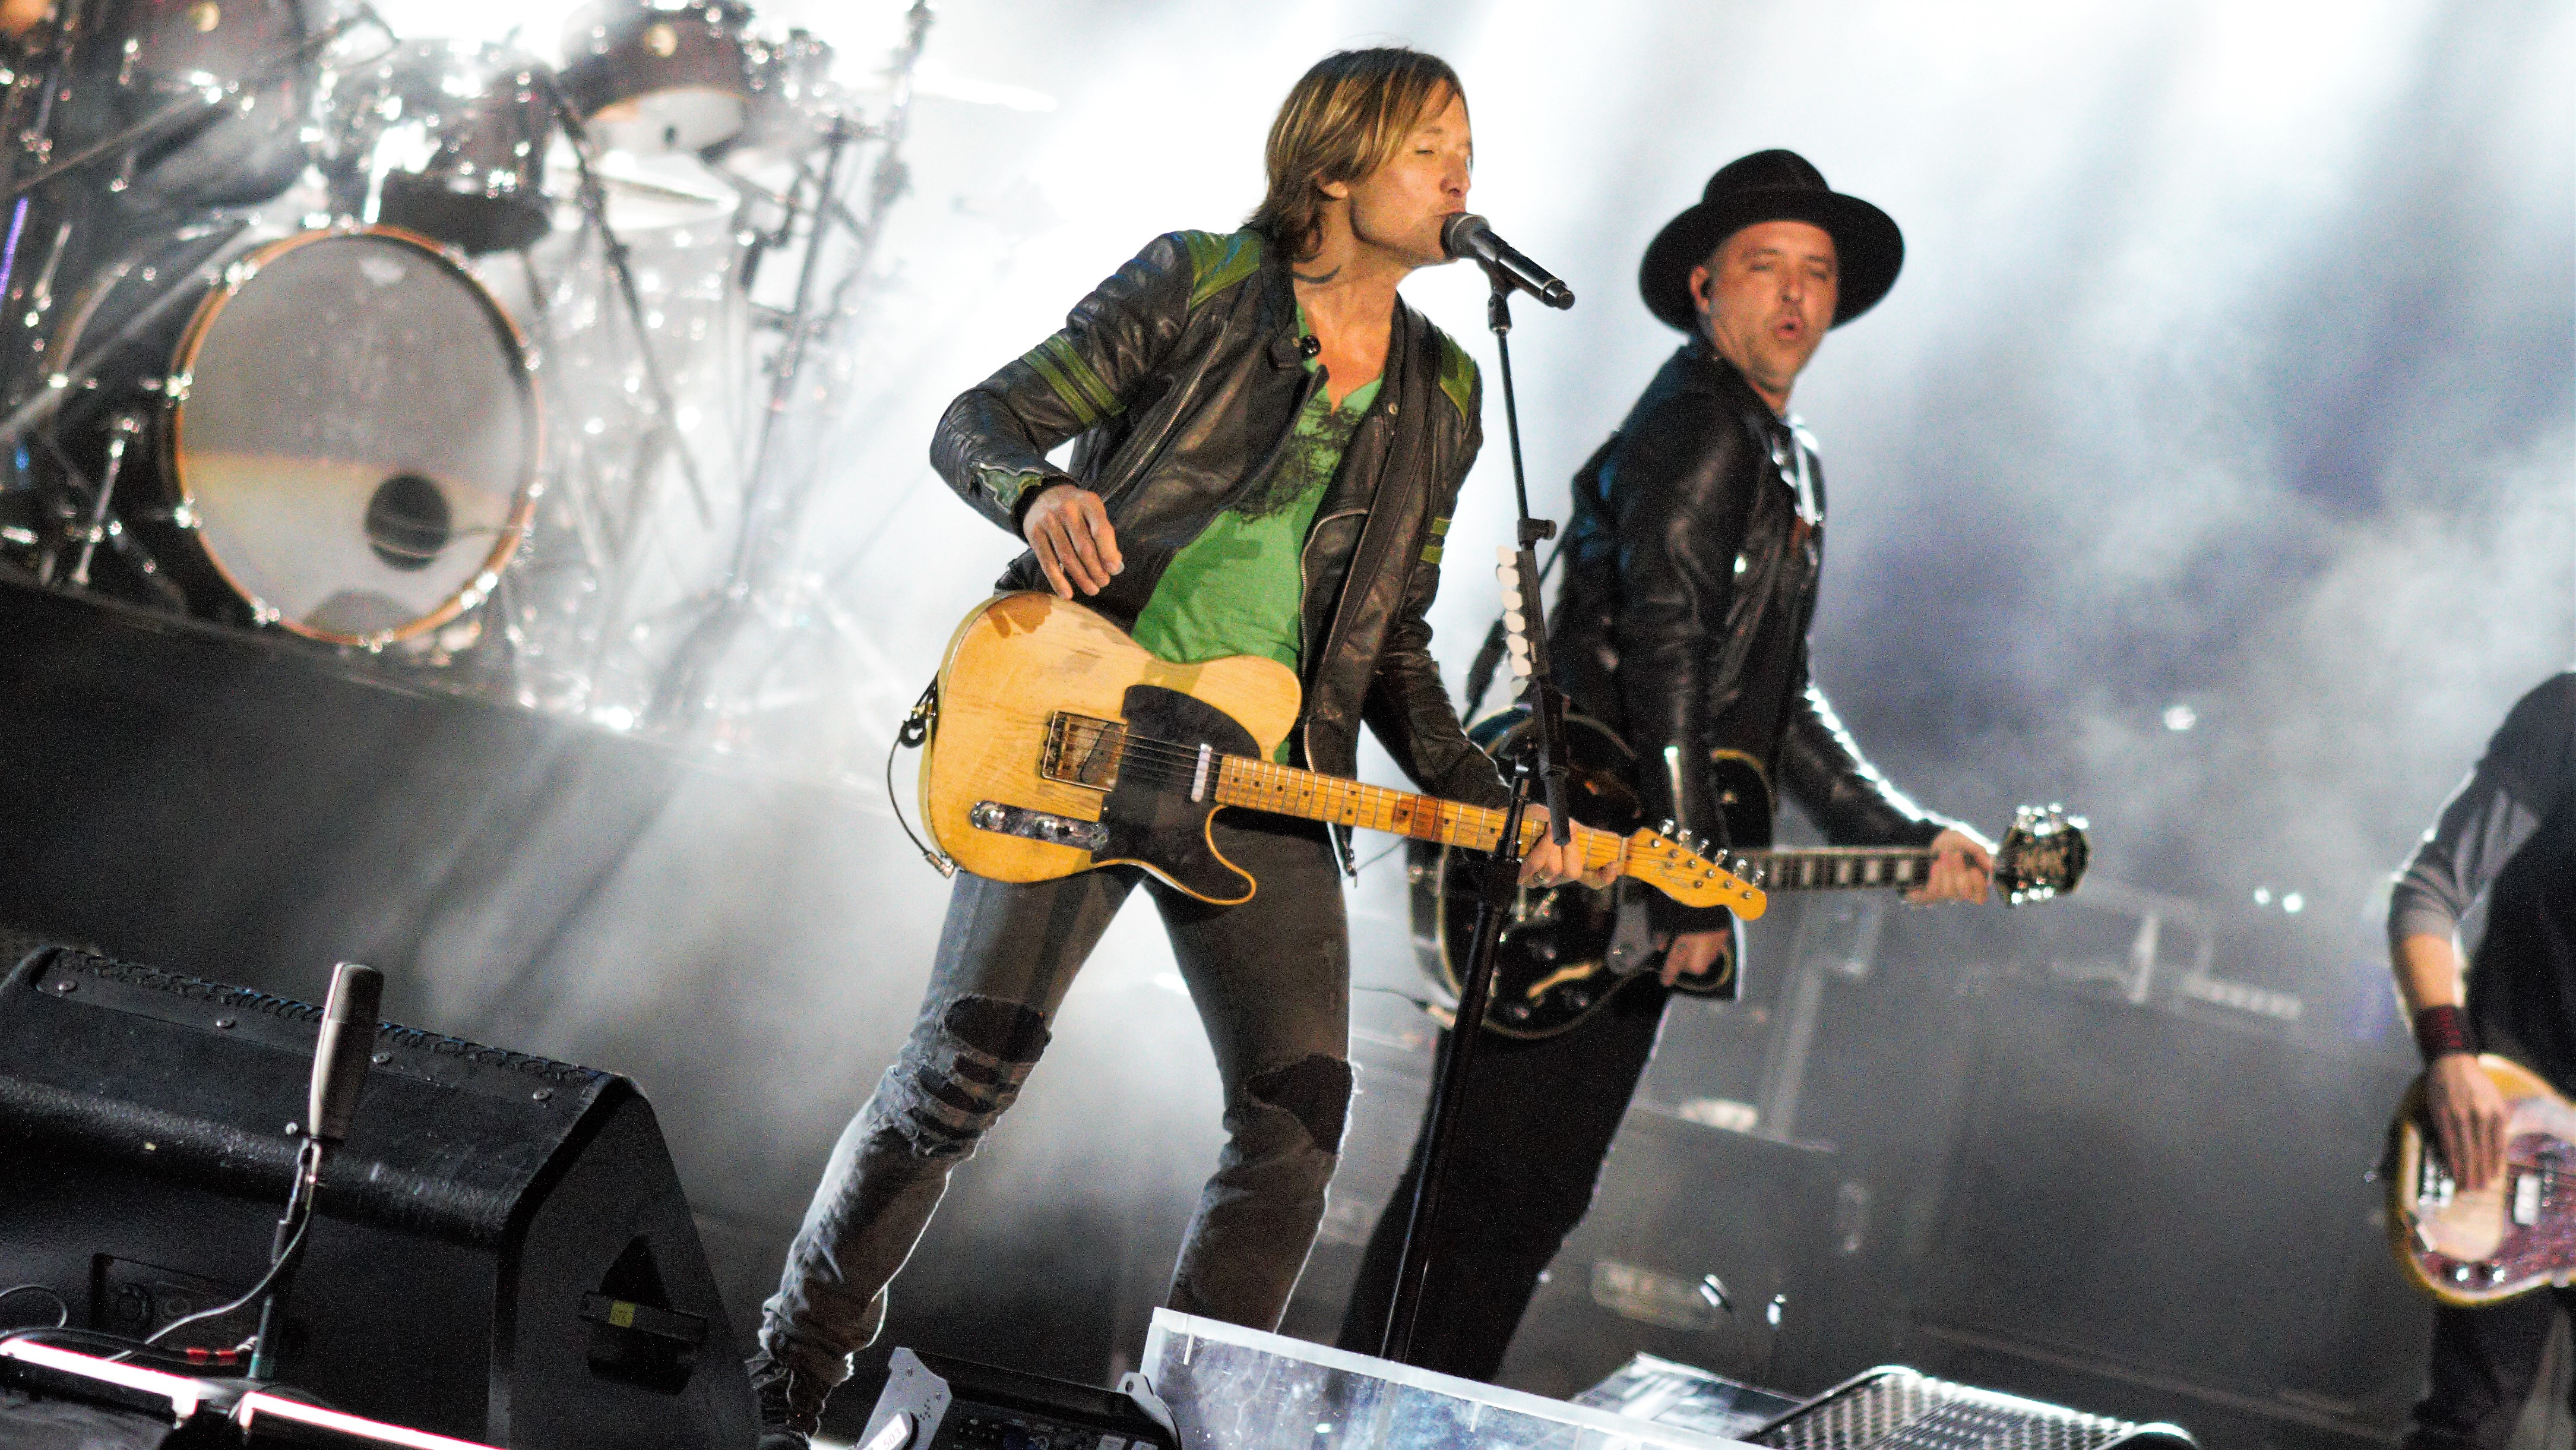 c53be3acb8b82 Keith Urban will headline the seventh annual Faster Horses Festival